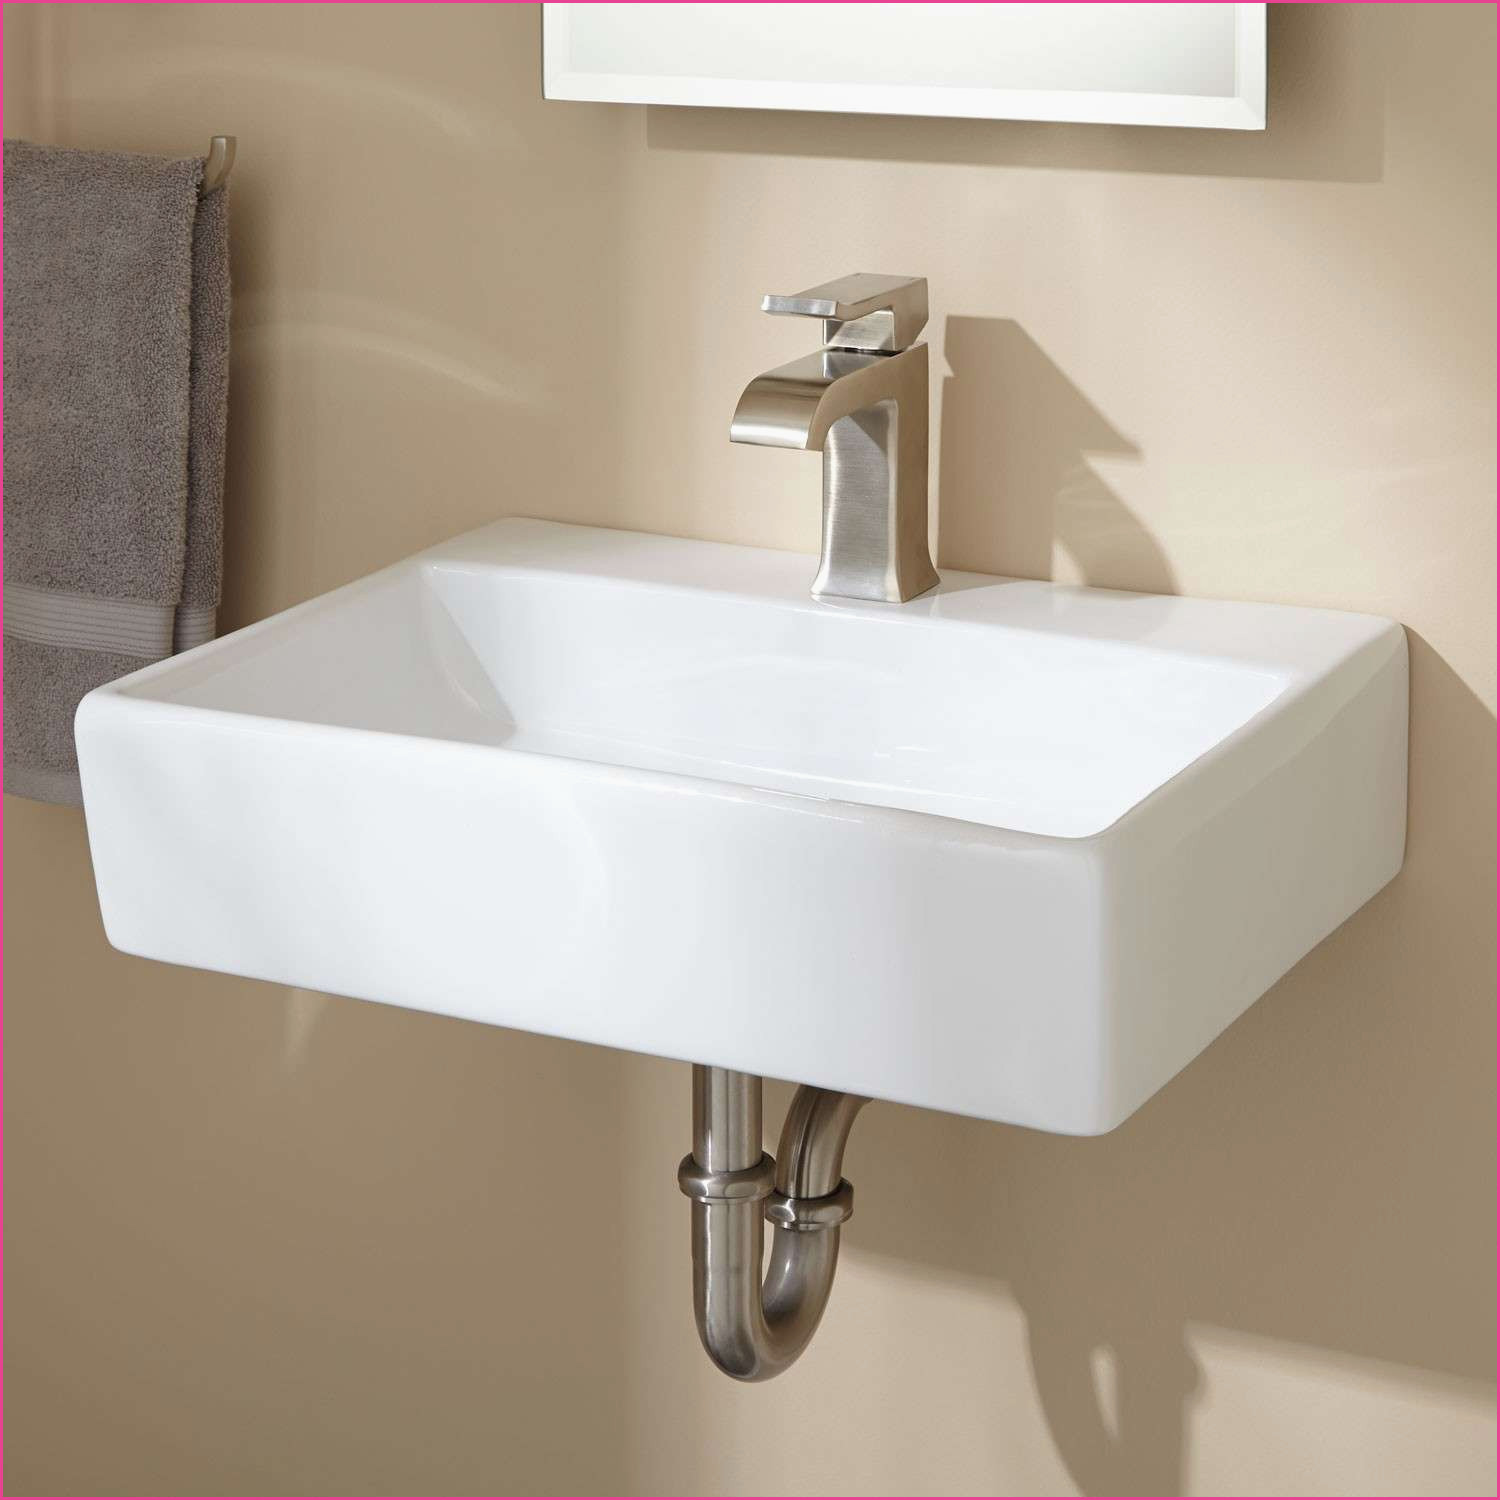 Best ideas about Home Depot Bathroom Sink . Save or Pin Fresh Home Depot Small Bathroom Sinks – REFLEXCAL Now.